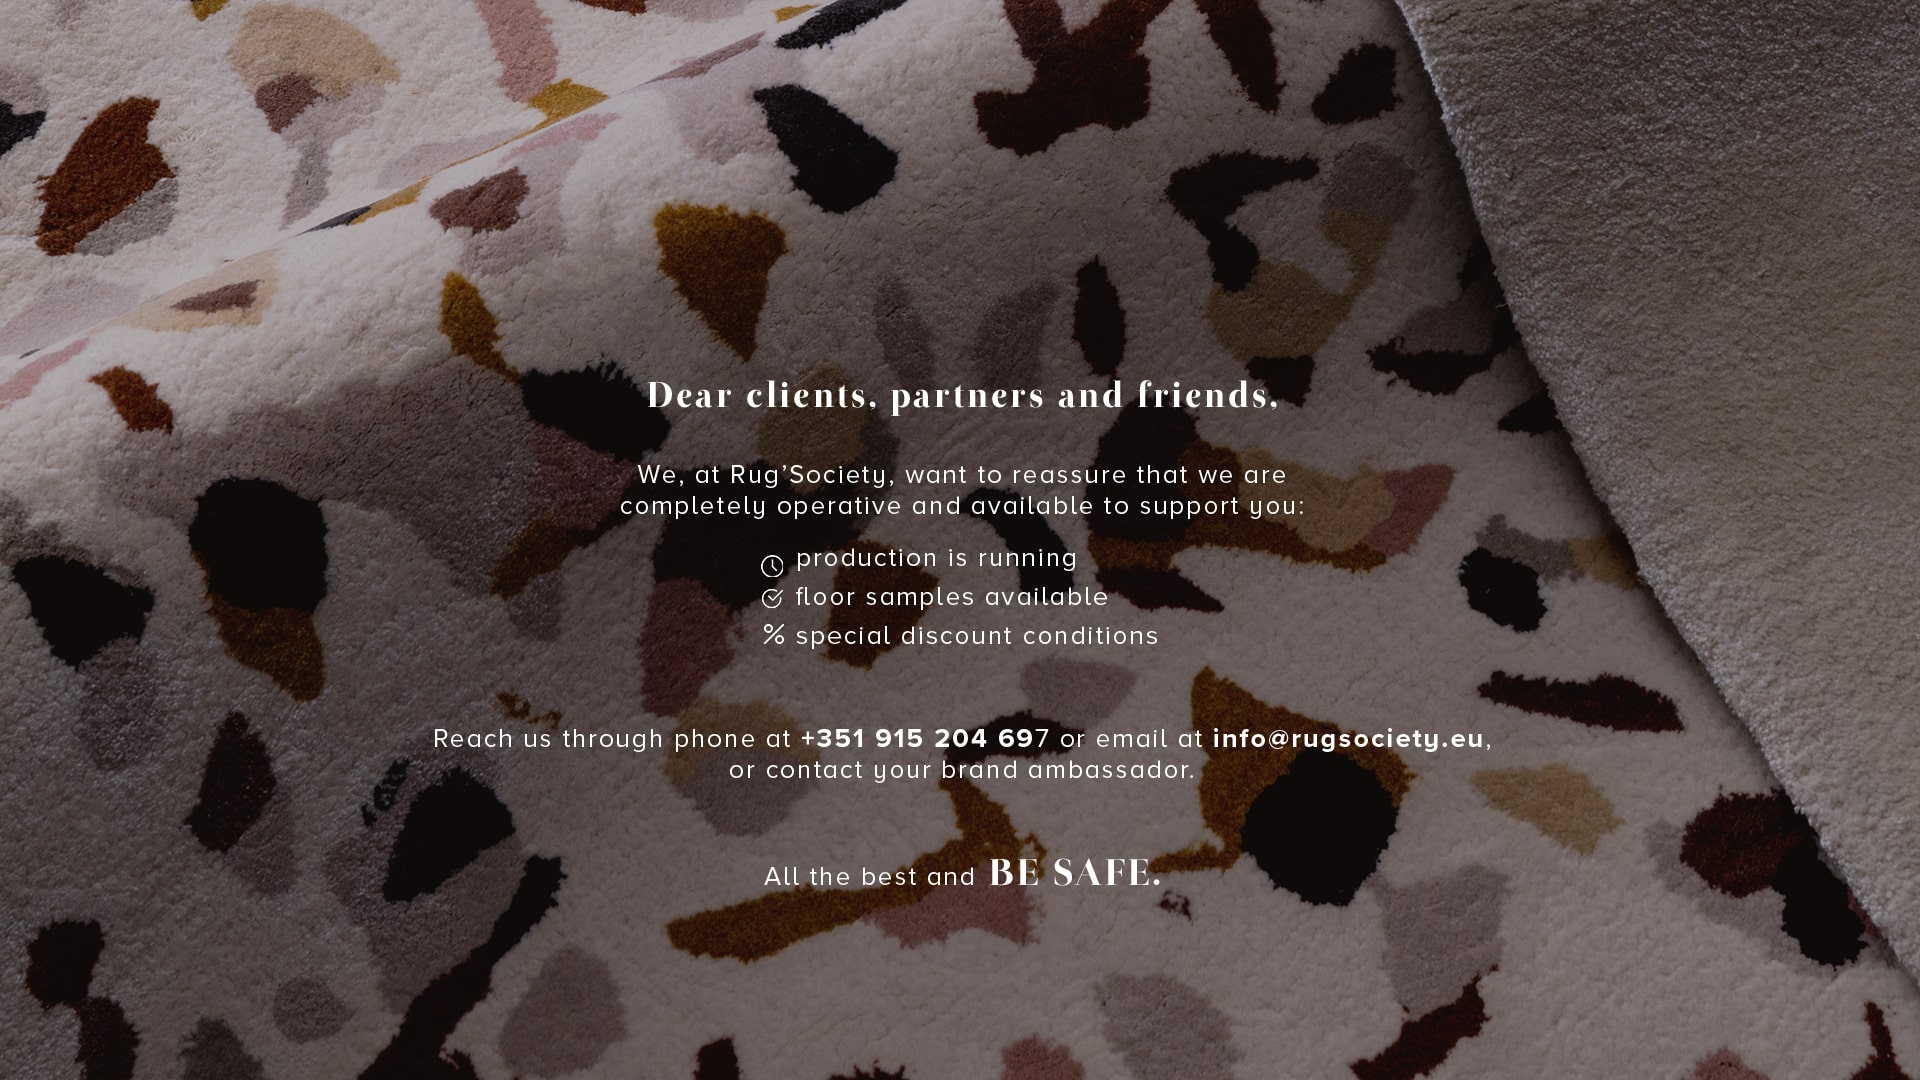 We, at Rug'Society, want to reassure that we are completely operative and available to support you: production is running, +500 Products in stock, floor samples available, special discount conditions. Reach us through phone at +351 915 204 697 or email at info@rugsociety.eu, or contact your brand ambassador. All the best and BE SAFE.